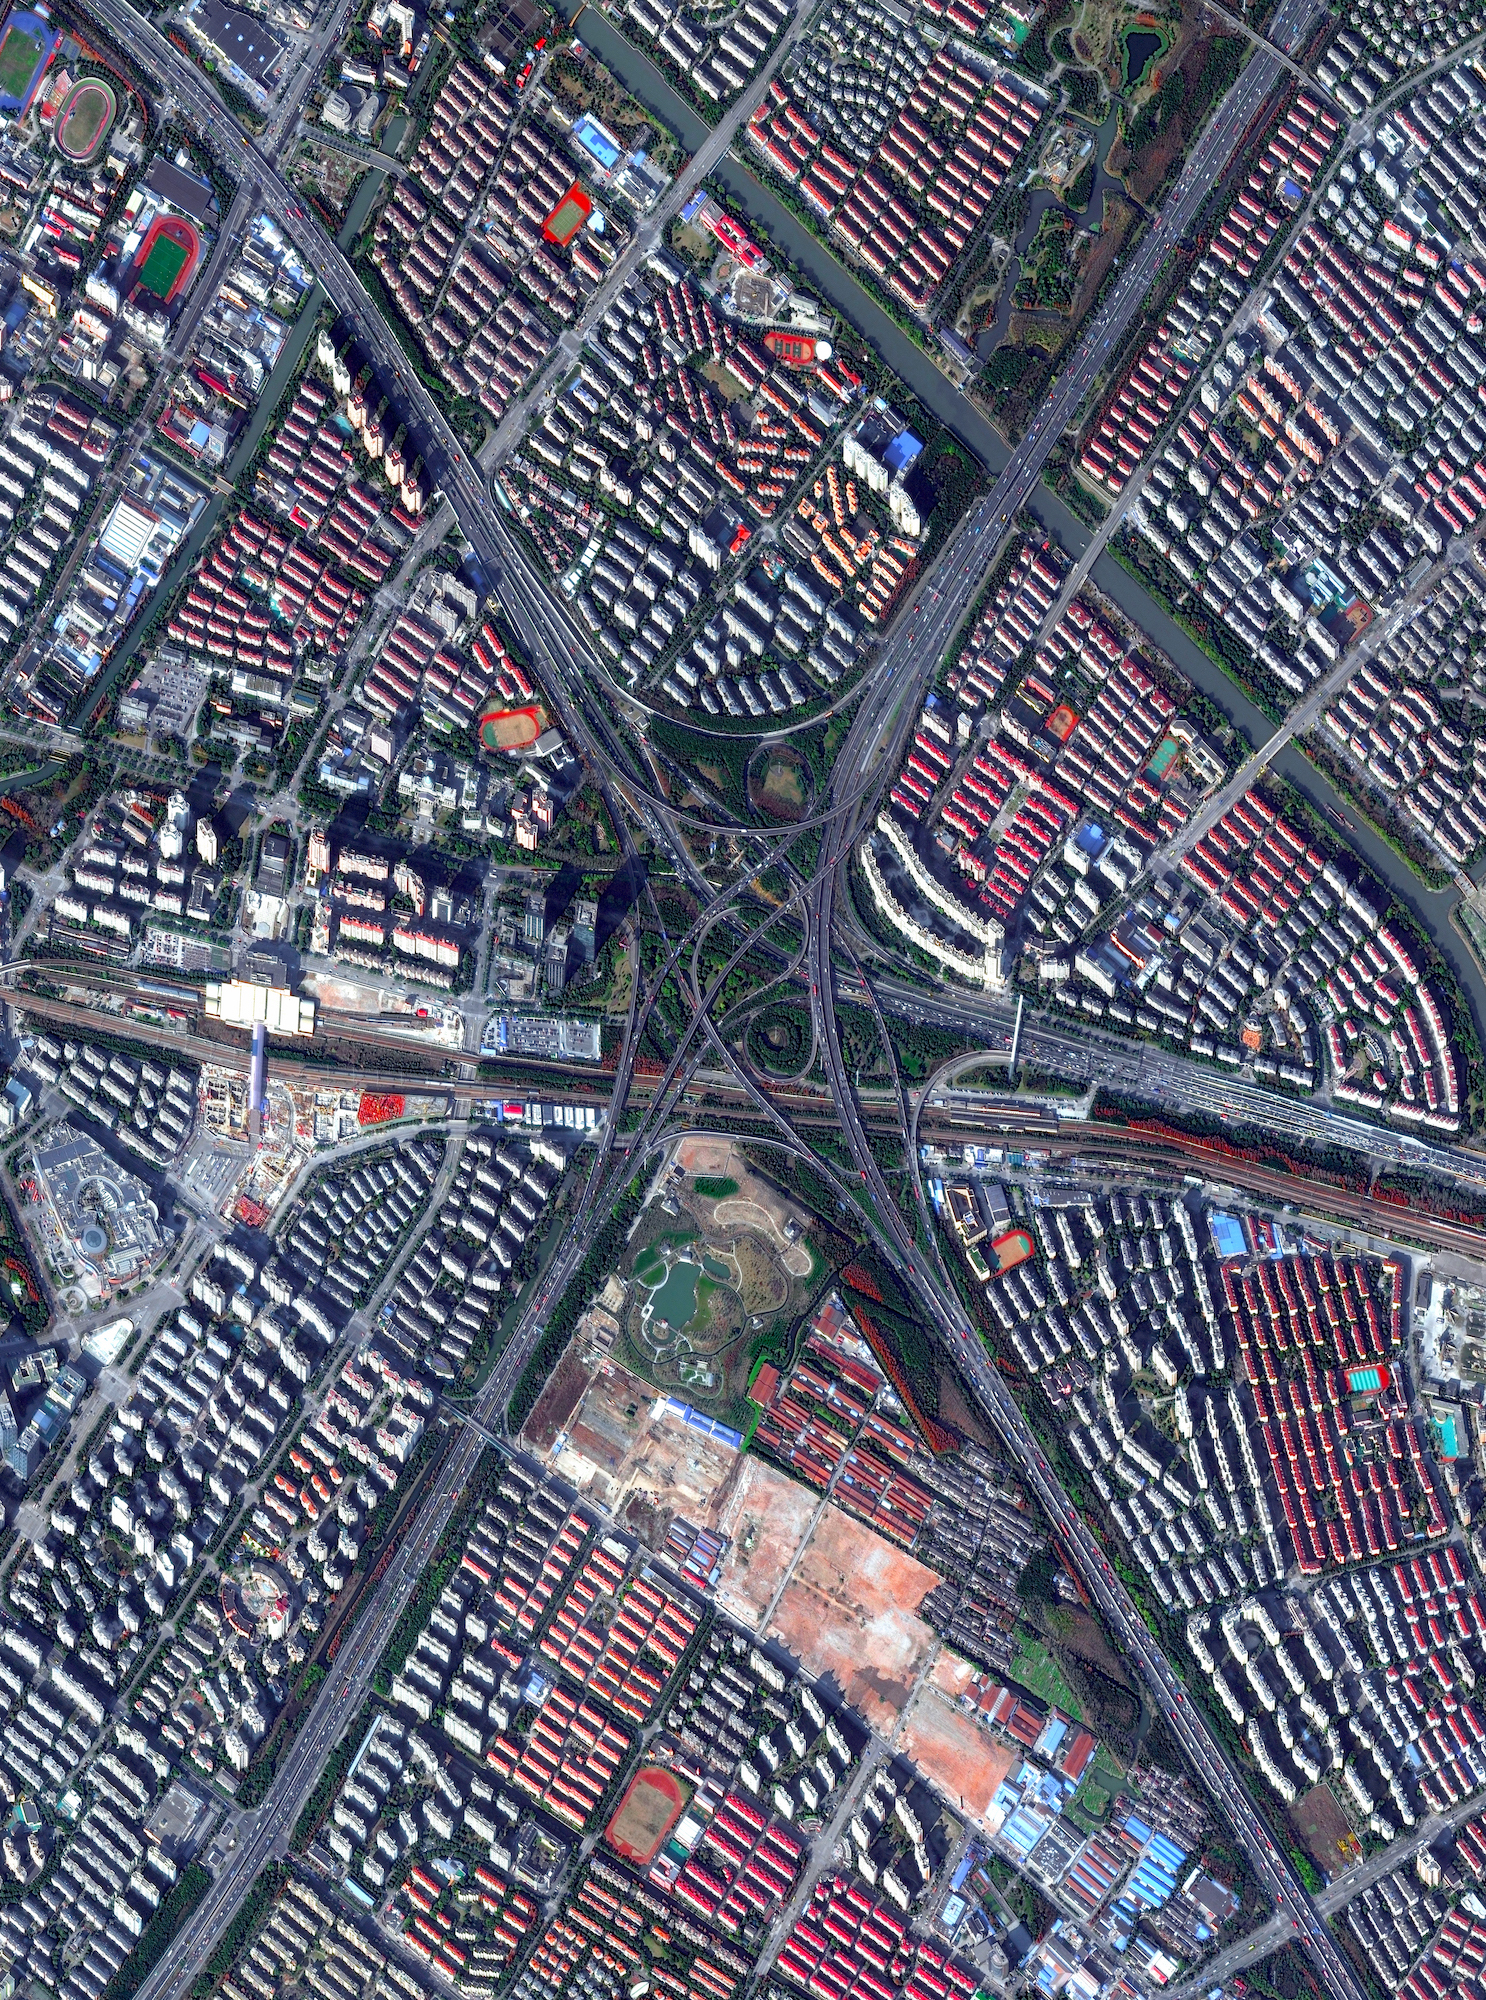 A highway interchange connects three major roads - the S20, G60, and S4 - in Shanghai, China. The city is home to roughly 2.5 million cars and 24 million people.  31.11892, 121.38823